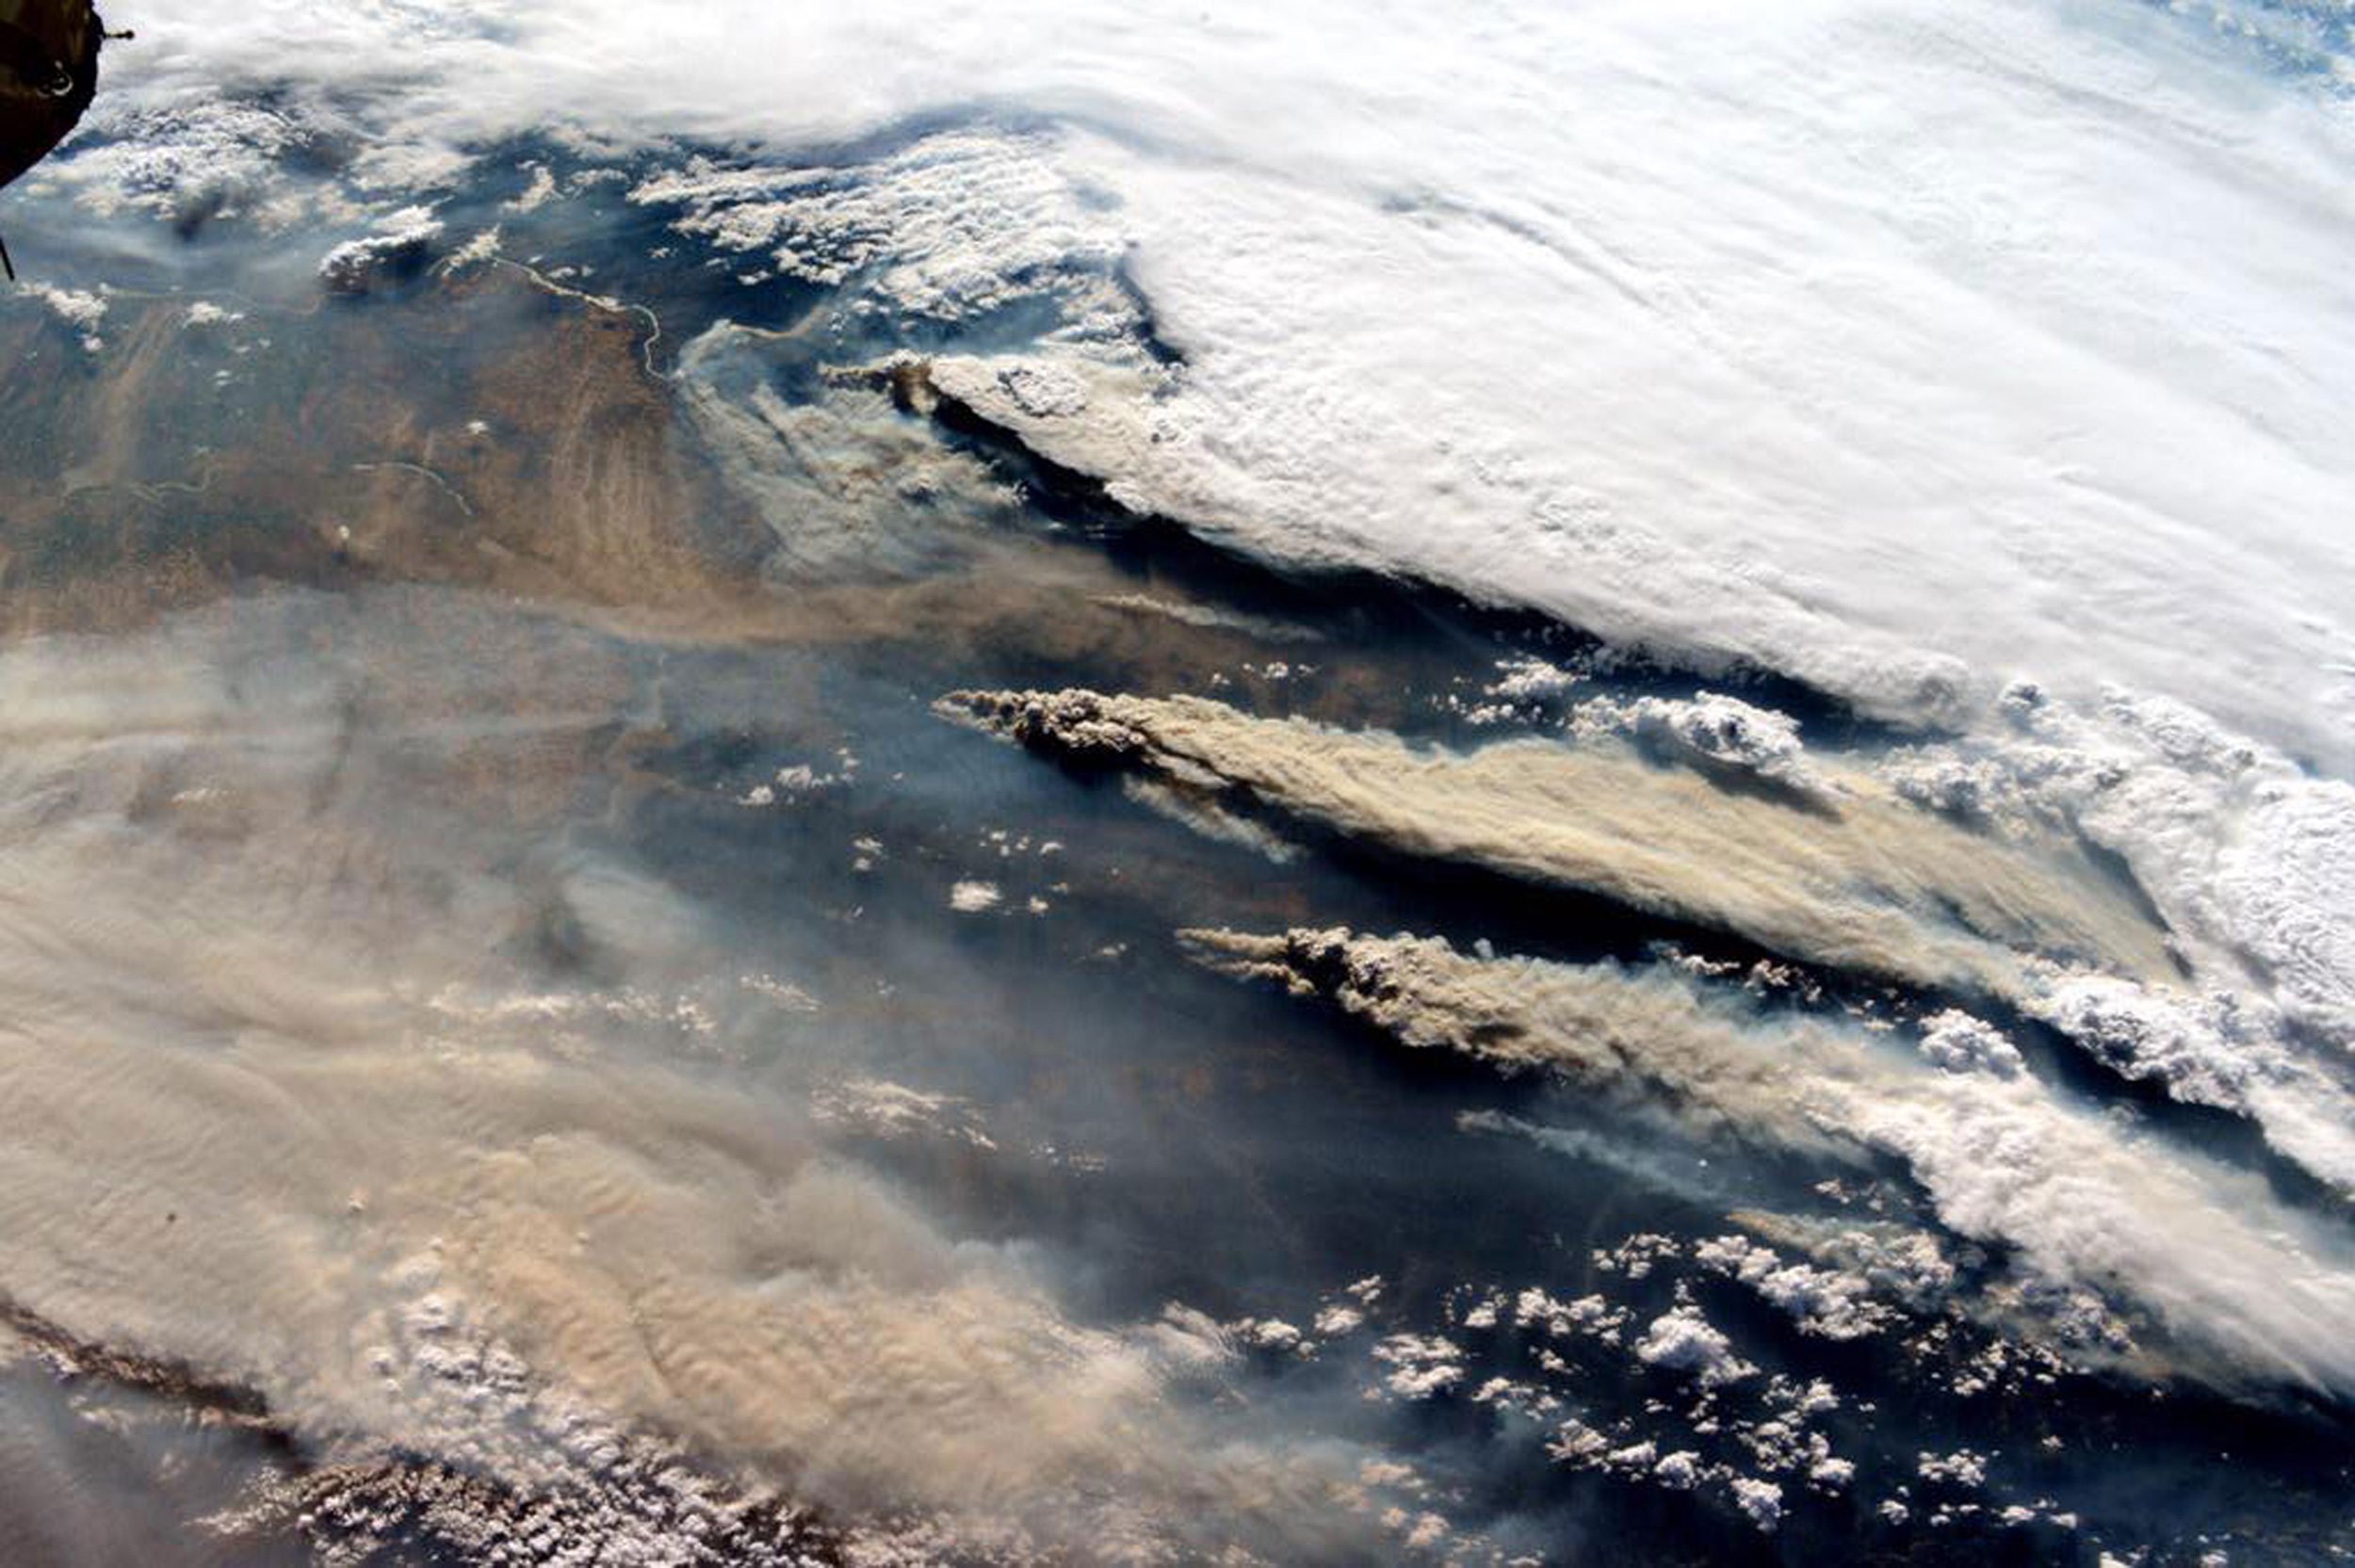 An image of the wildfires in the Northwest taken from the International Space Station released on Aug. 17, 2015.